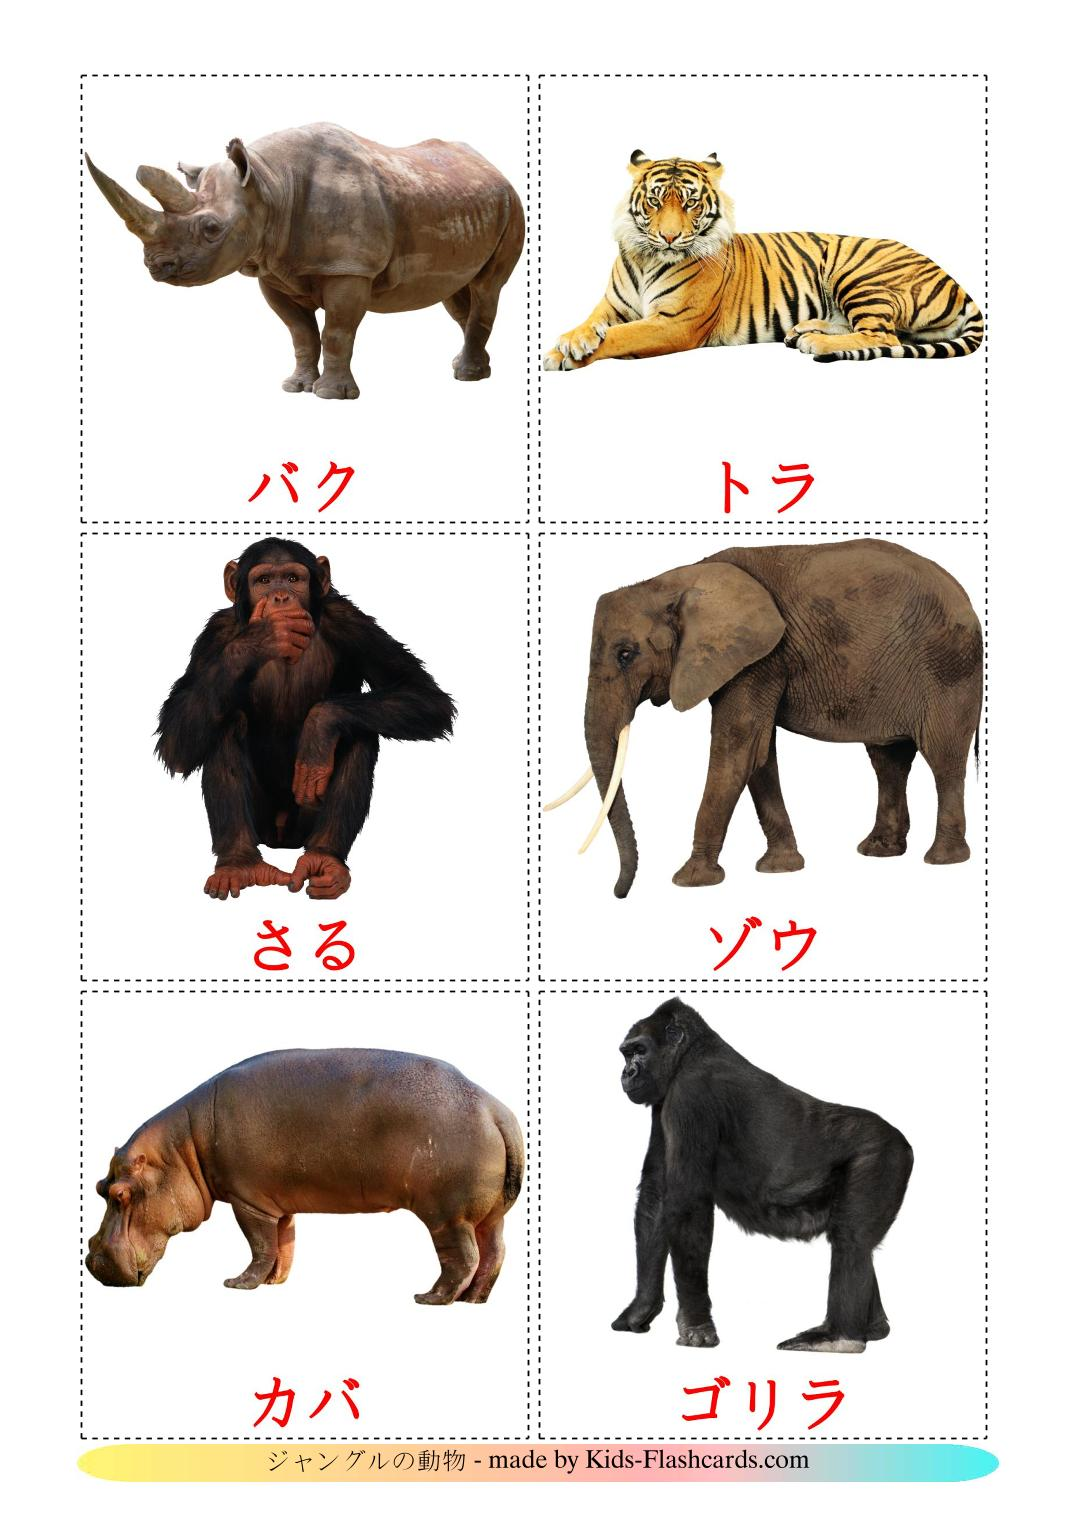 Jungle animals - 21 Free Printable japanese Flashcards